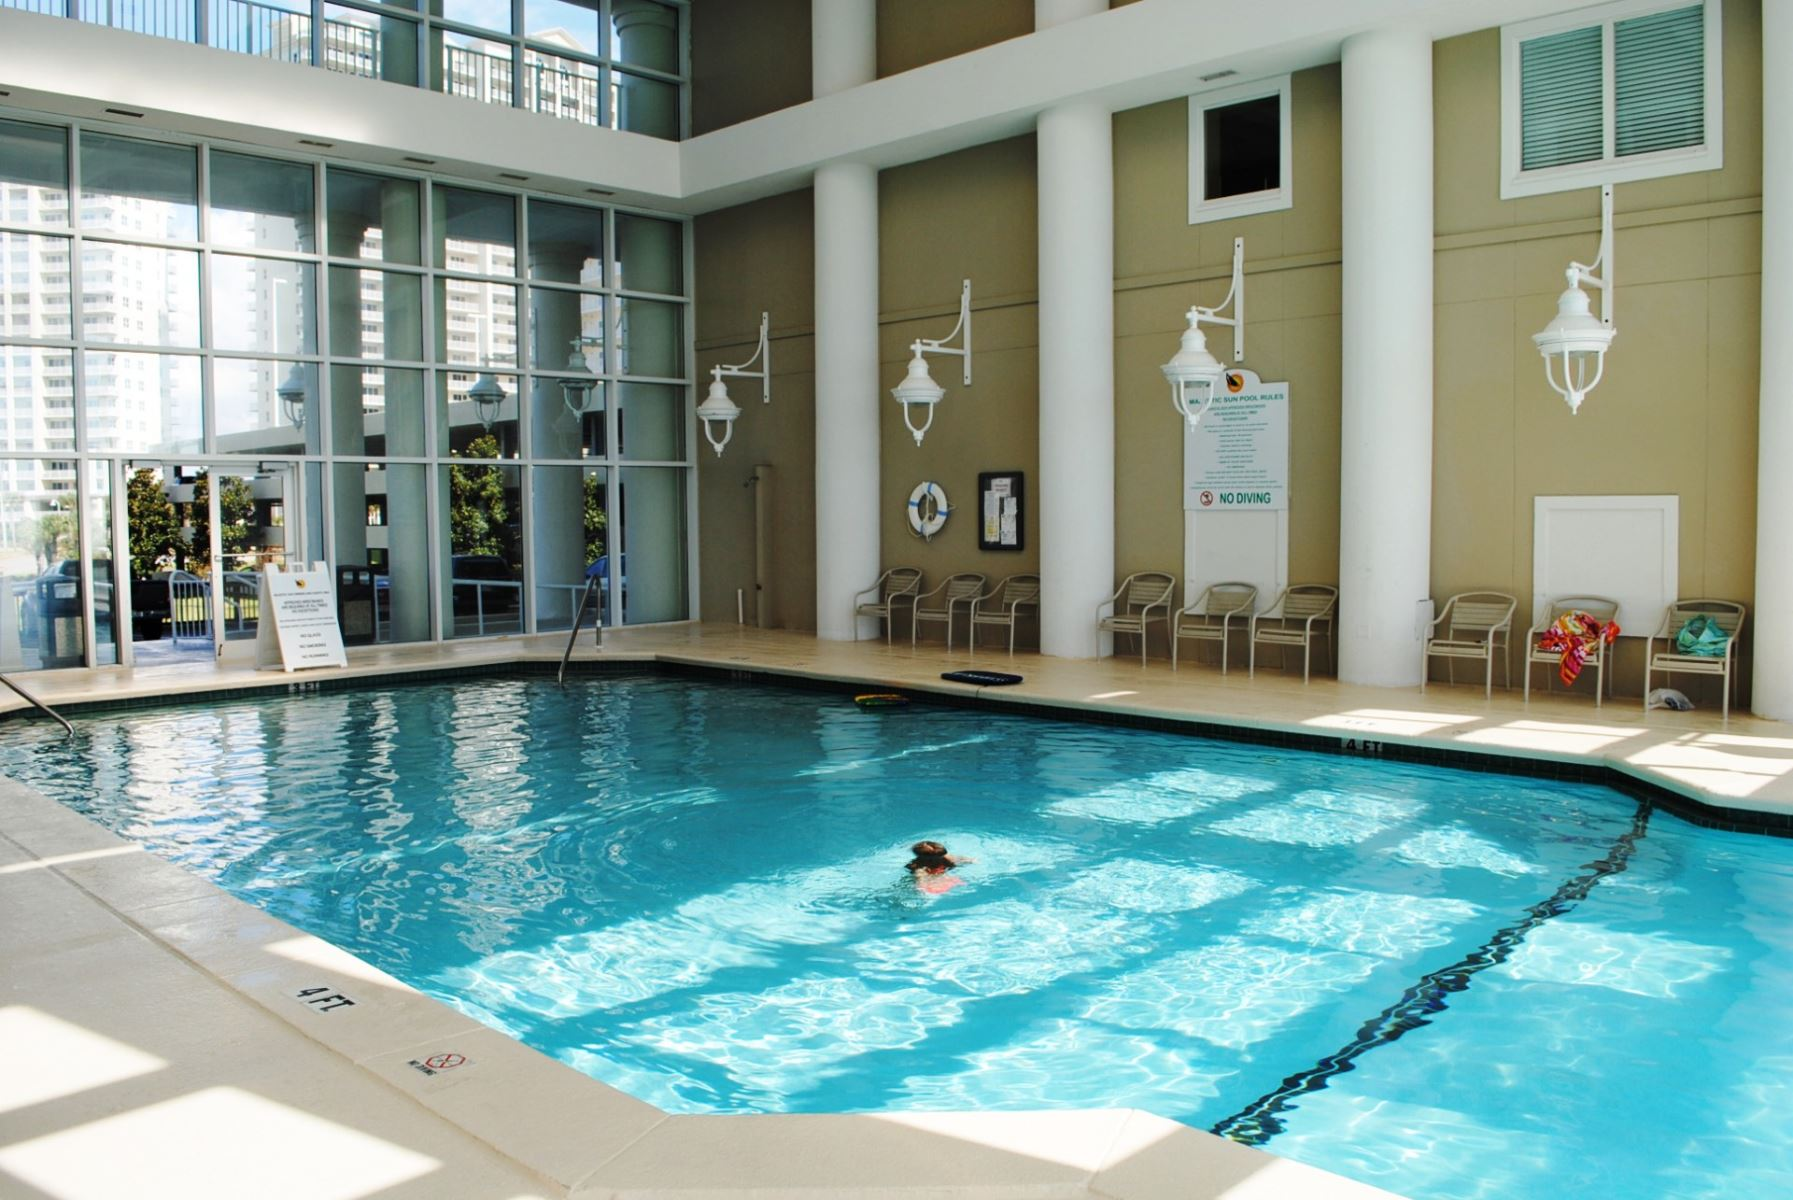 Large Indoor Pool Heated in Winter at Majestic Sun in Miramar Beach near Destin FL